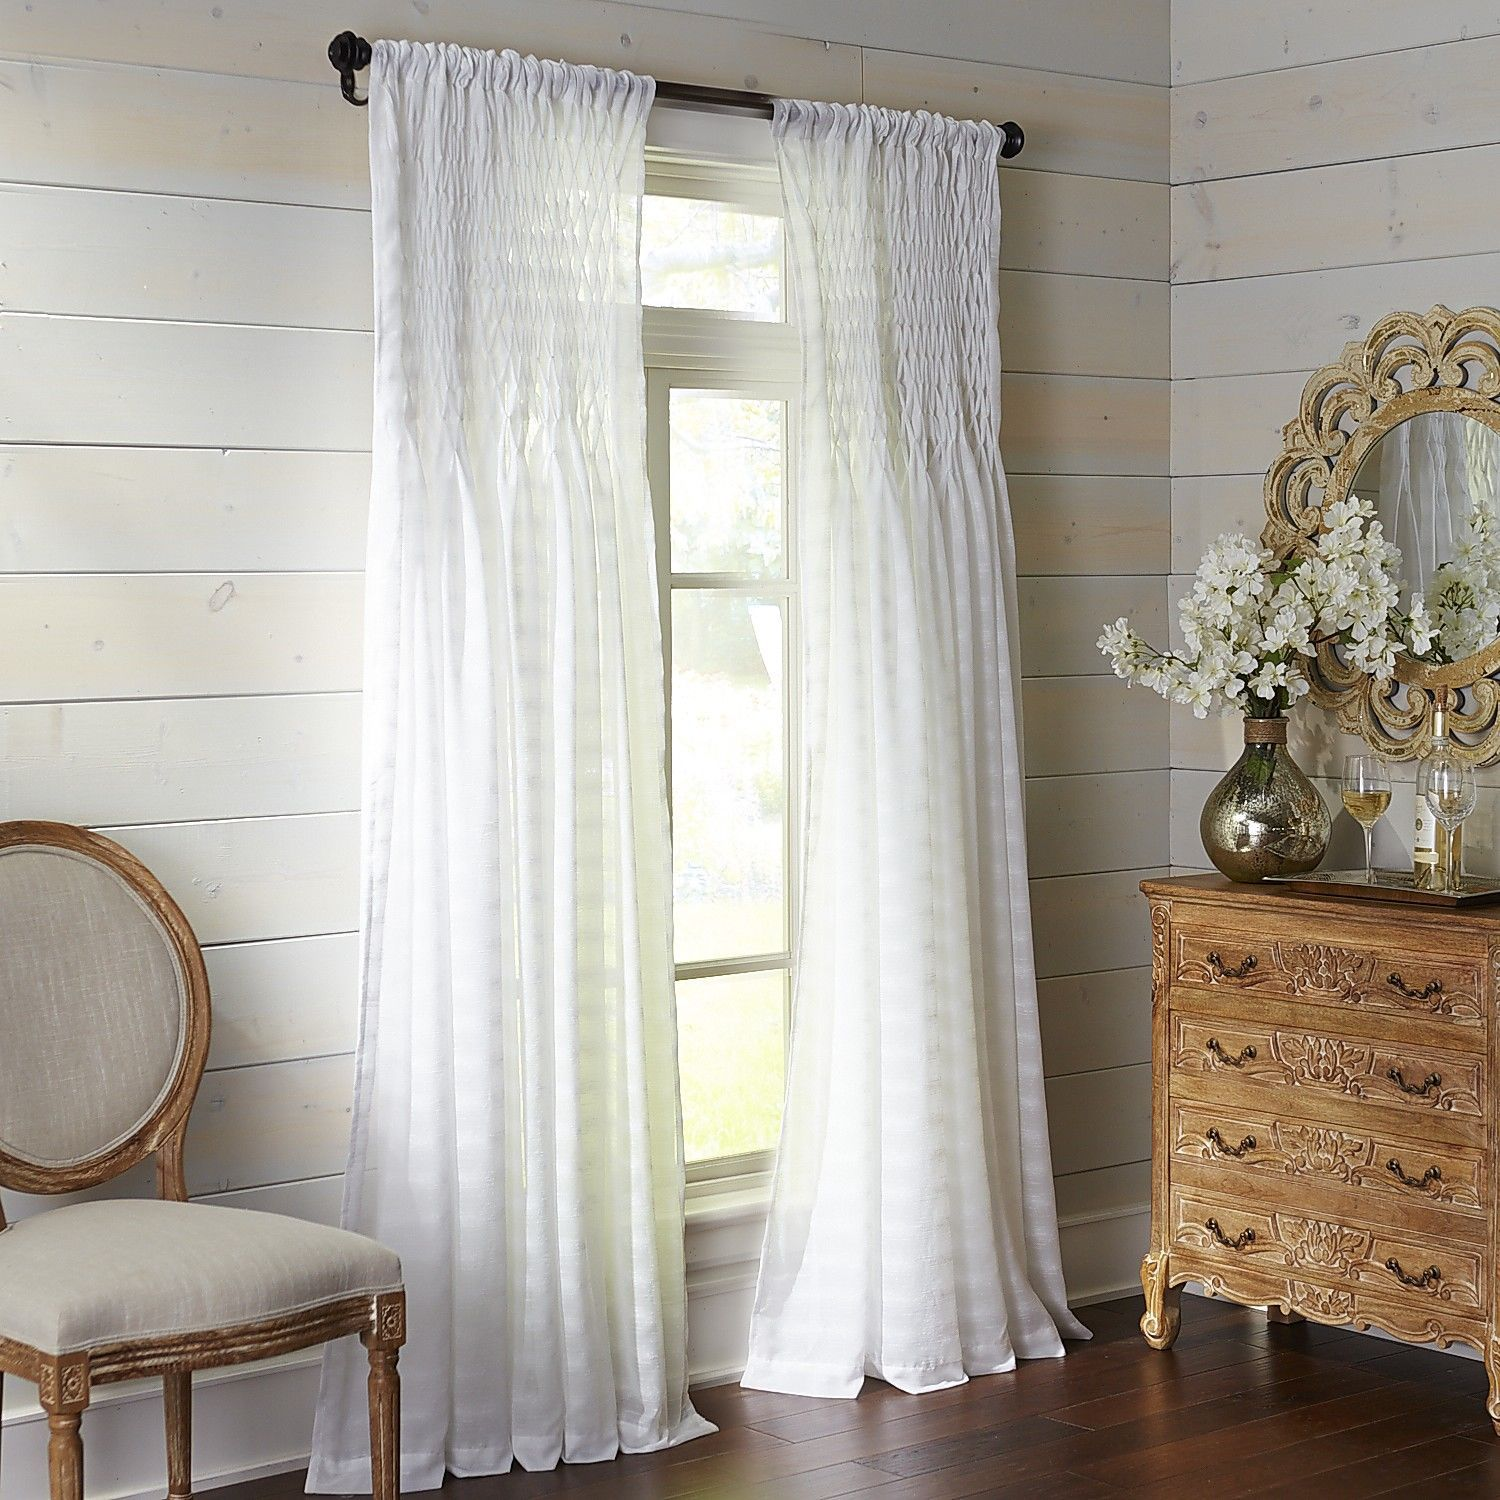 105 Inch Curtains Magnolia Smocked Curtain Pier 1 Imports Nursery Bedroom